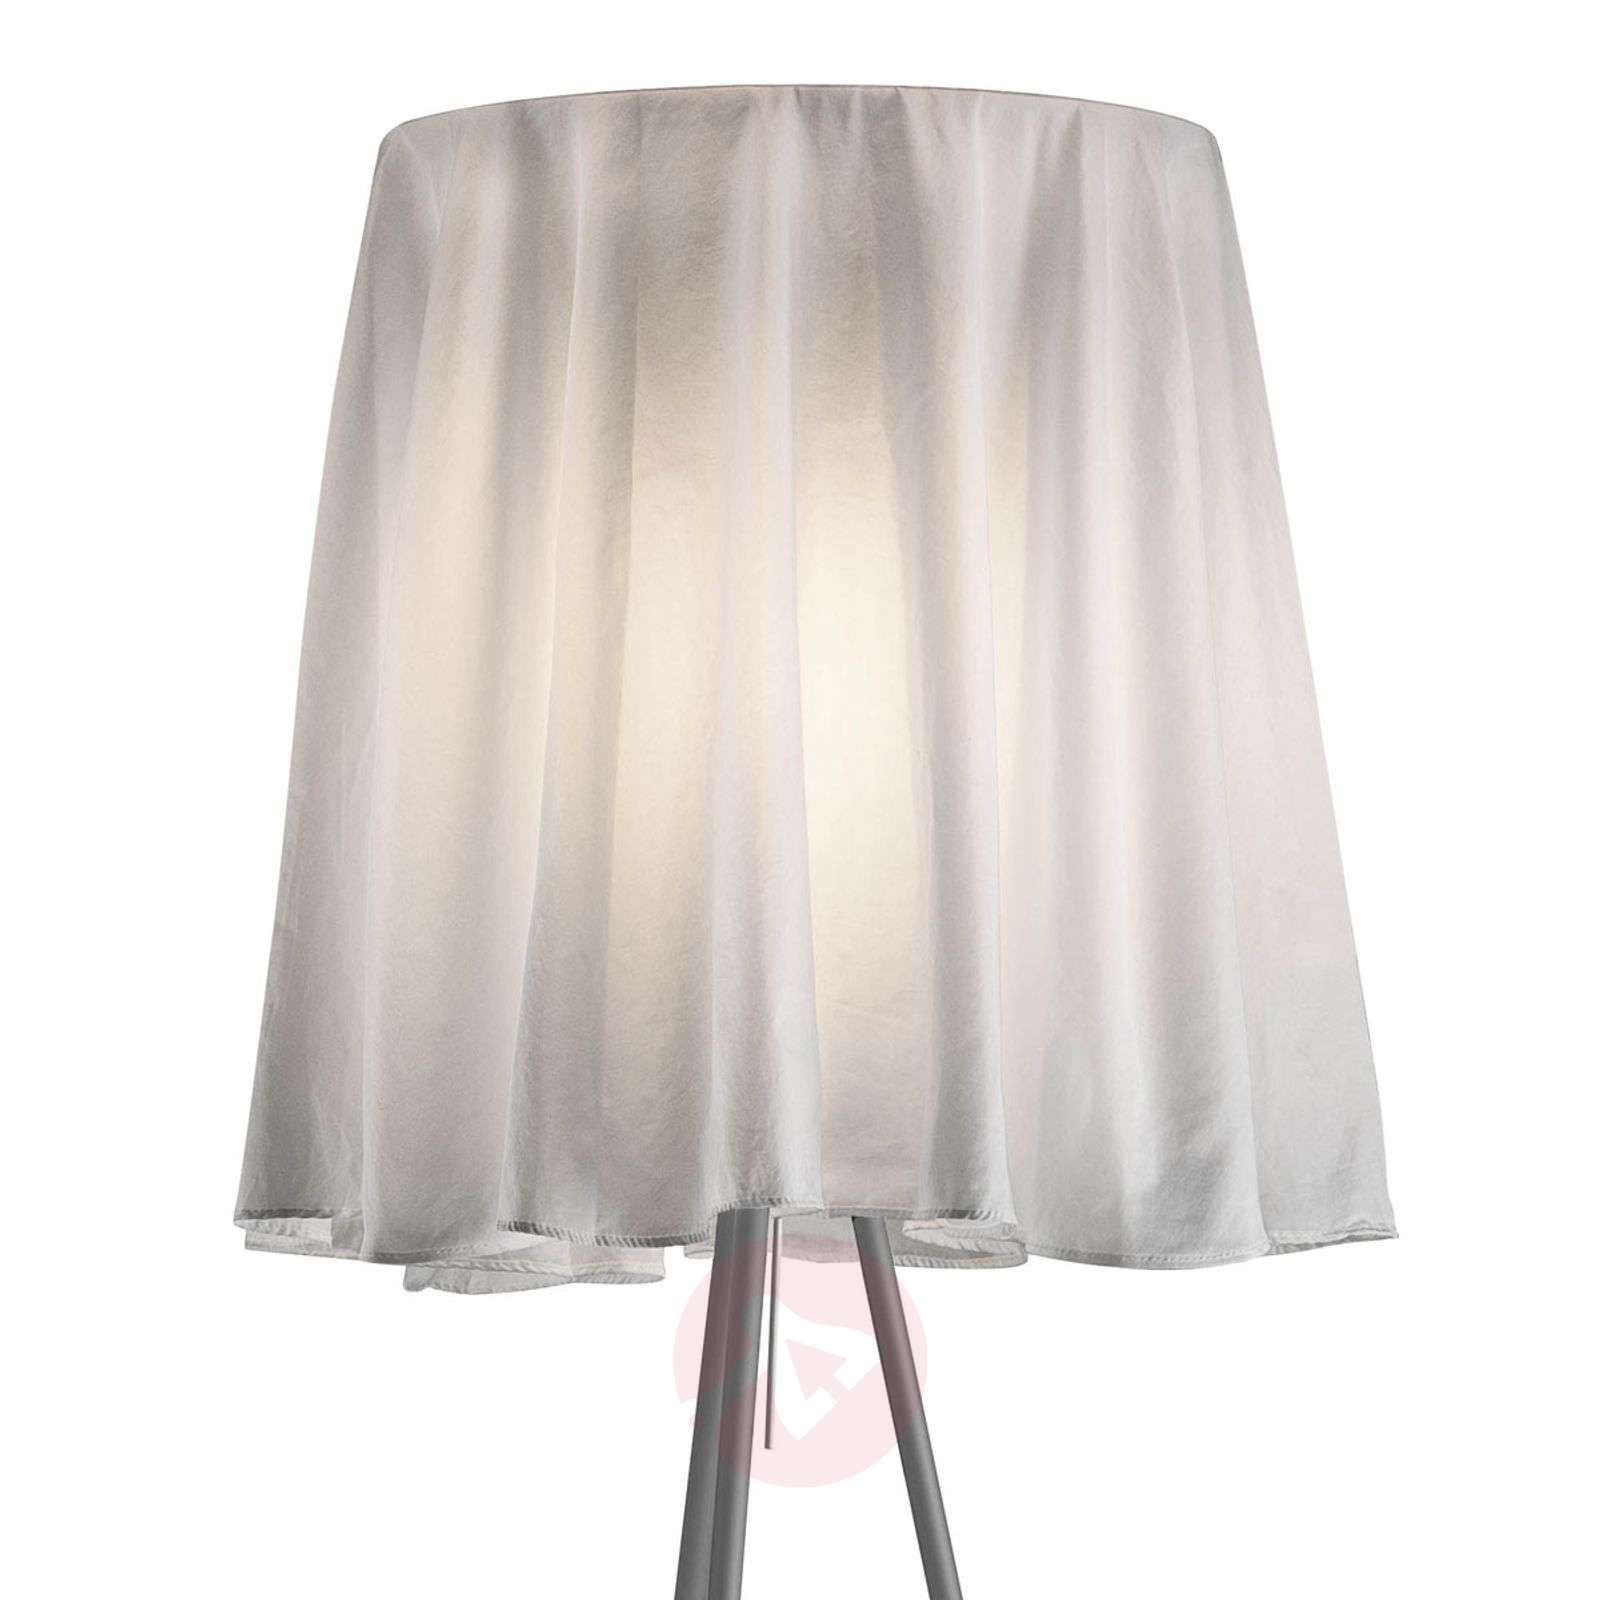 ROSY ANGELIS floor lamp with a silver frame-3510071-03